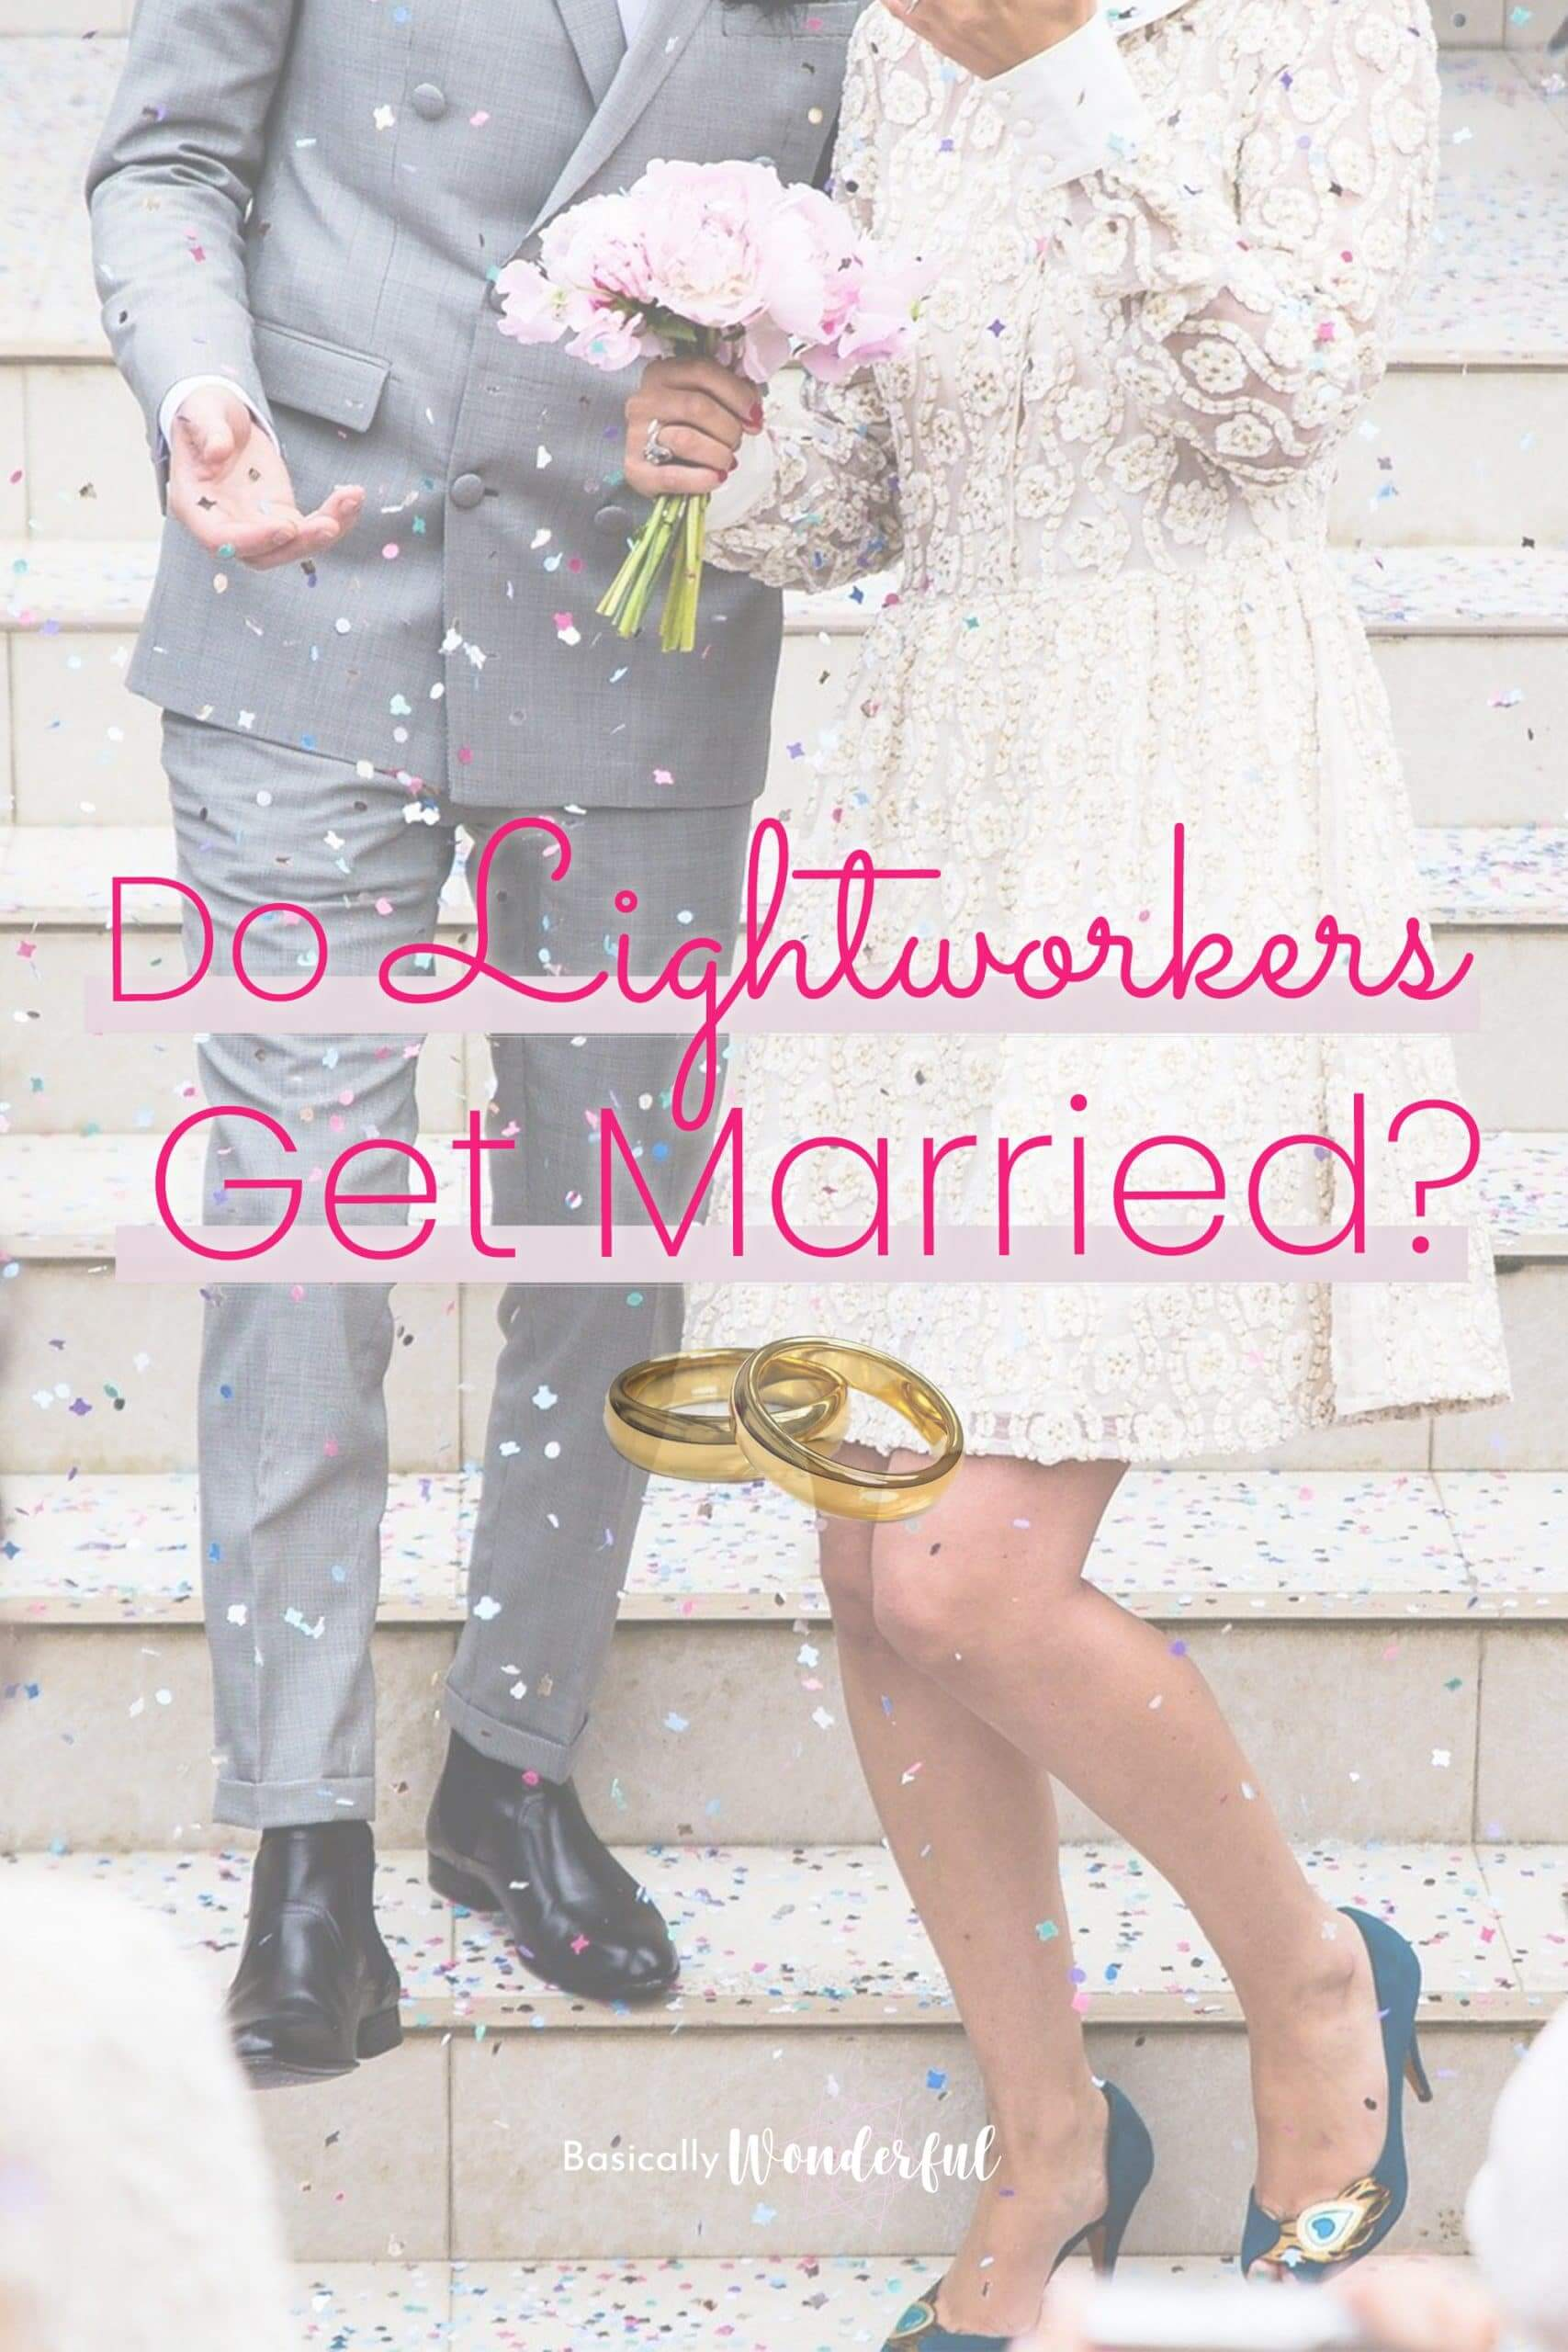 marriage for lightworkers